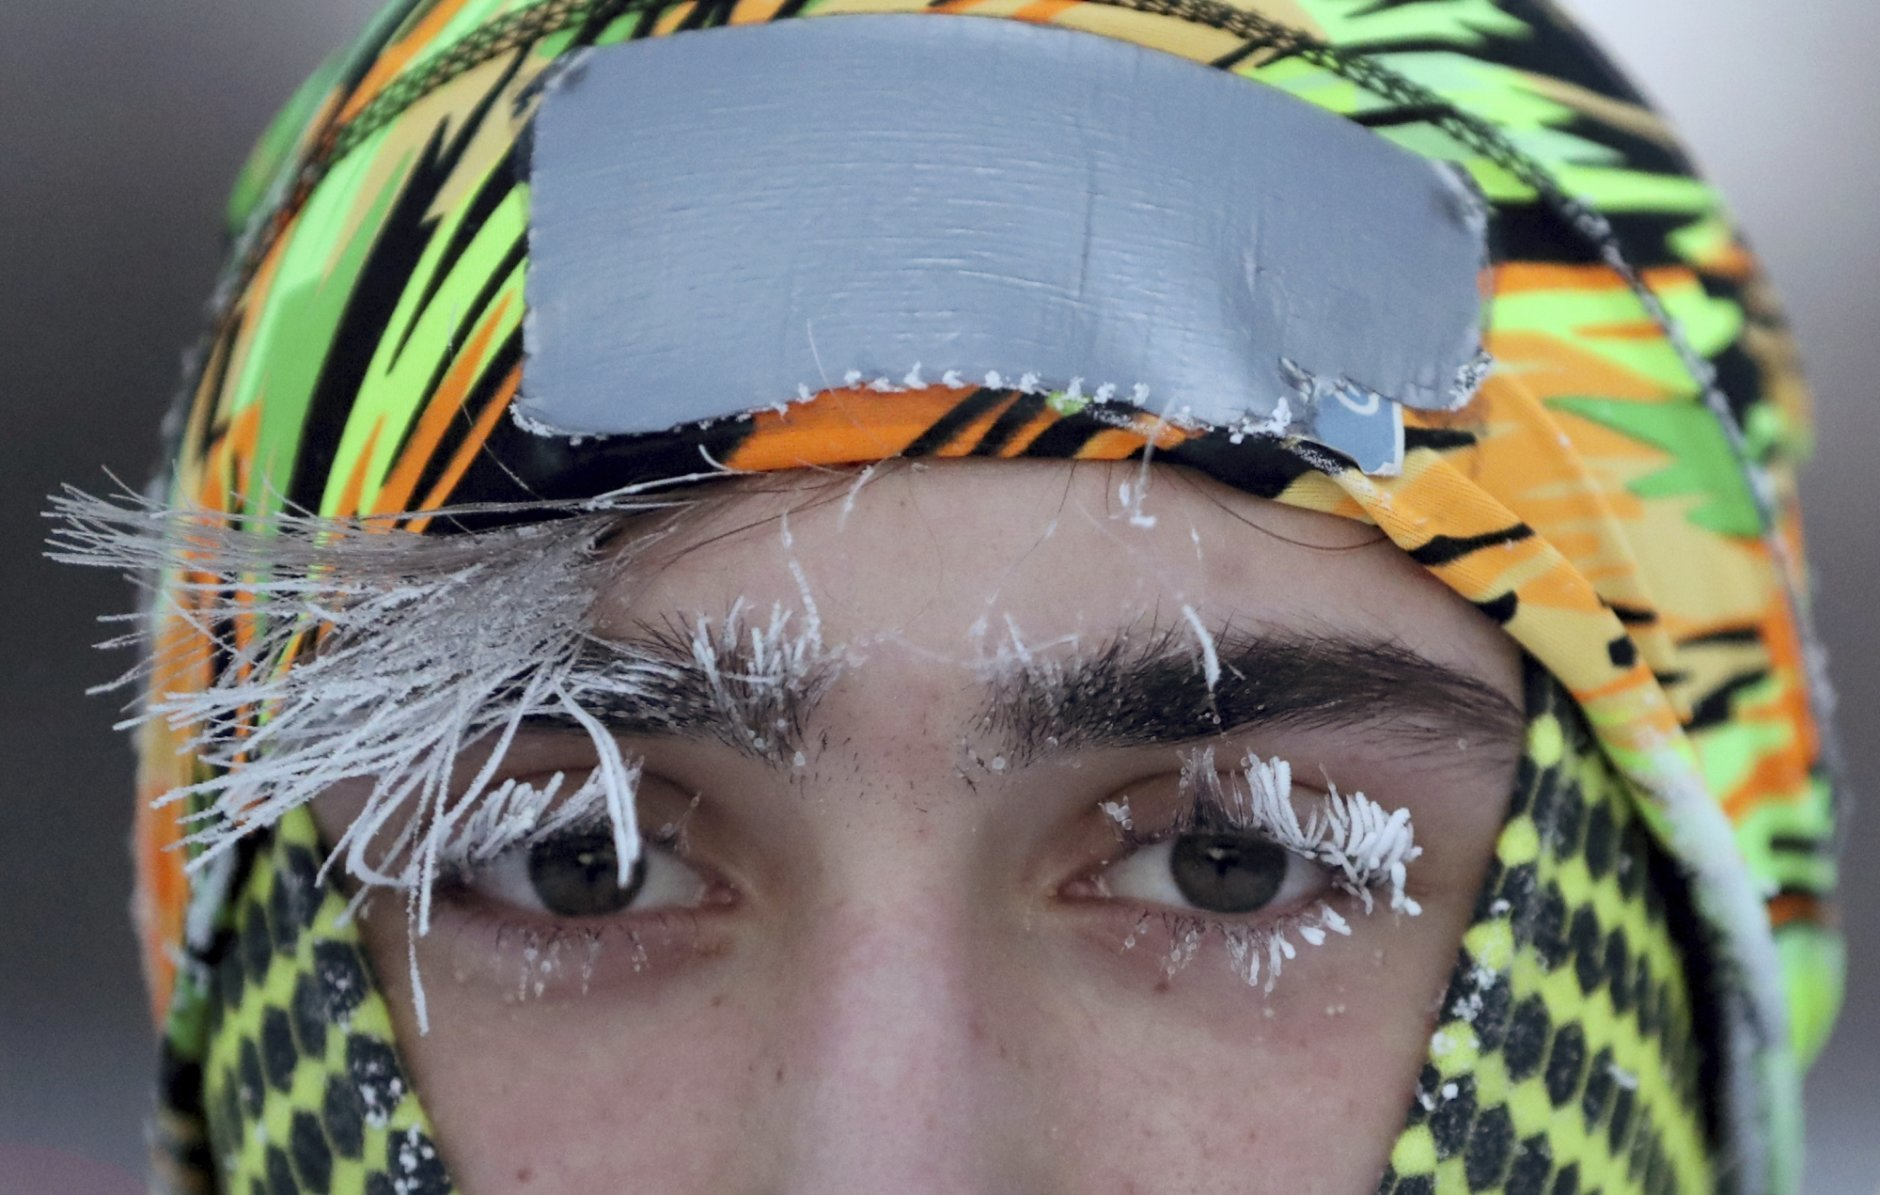 Frost covers part of the face of University of Minnesota student Daniel Dylla during a morning jog along Mississippi River Parkway Tuesday, Jan. 29, 2019, in Minneapolis. Extreme cold and record-breaking temperatures are crawling into parts of the Midwest after a powerful snowstorm pounded the region, and forecasters warn that the frigid weather could be life-threatening.  (David Joles/Star Tribune via AP)